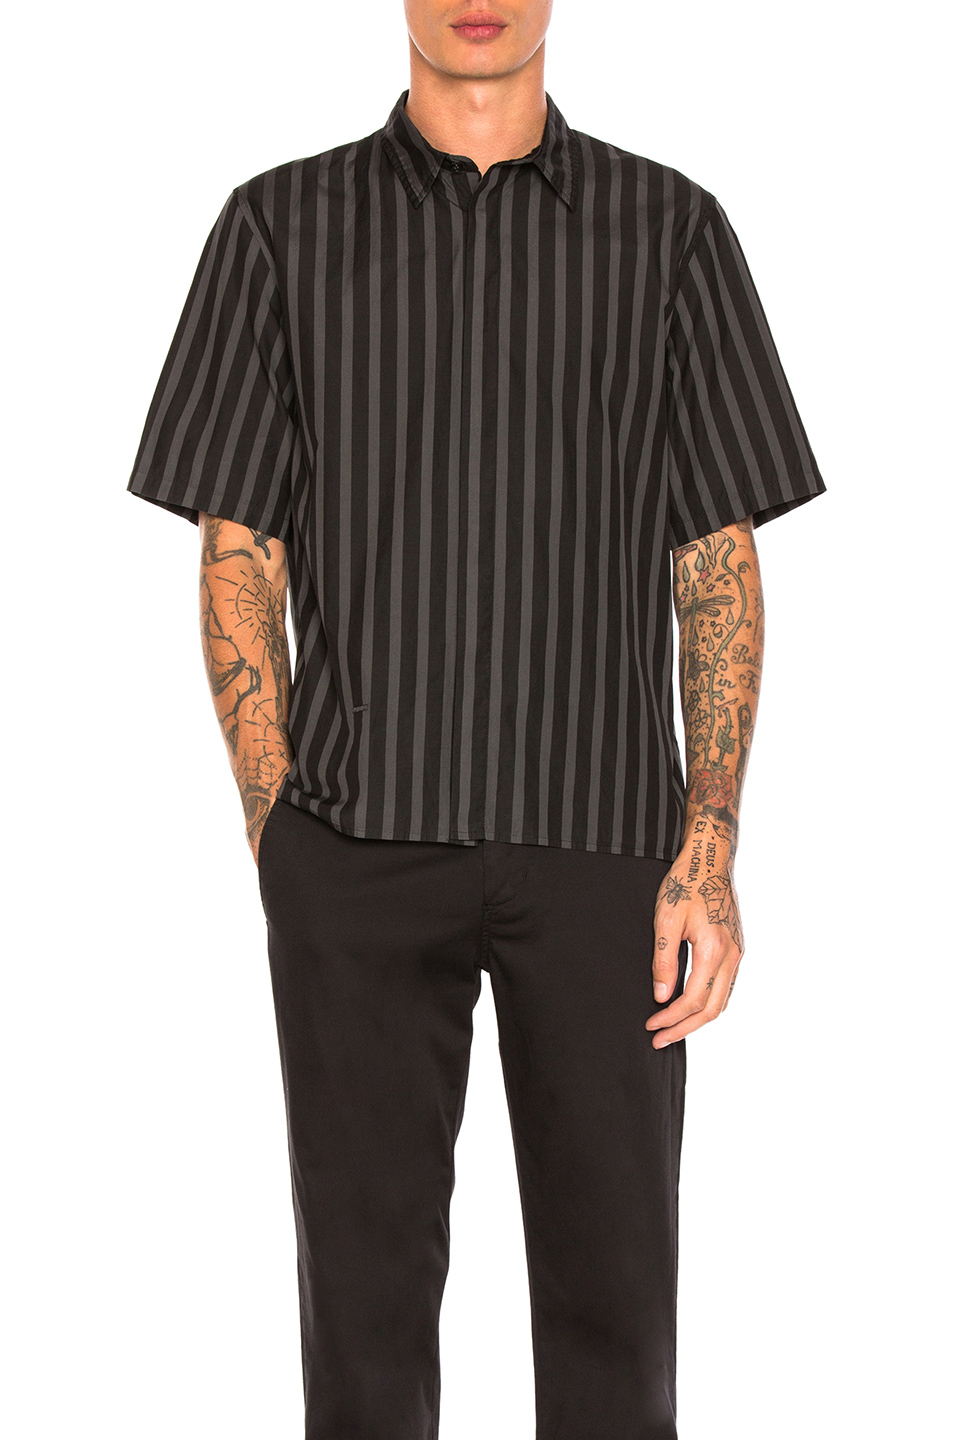 Robert Geller Over Dyed Stripe Shirt in Black,Stripes